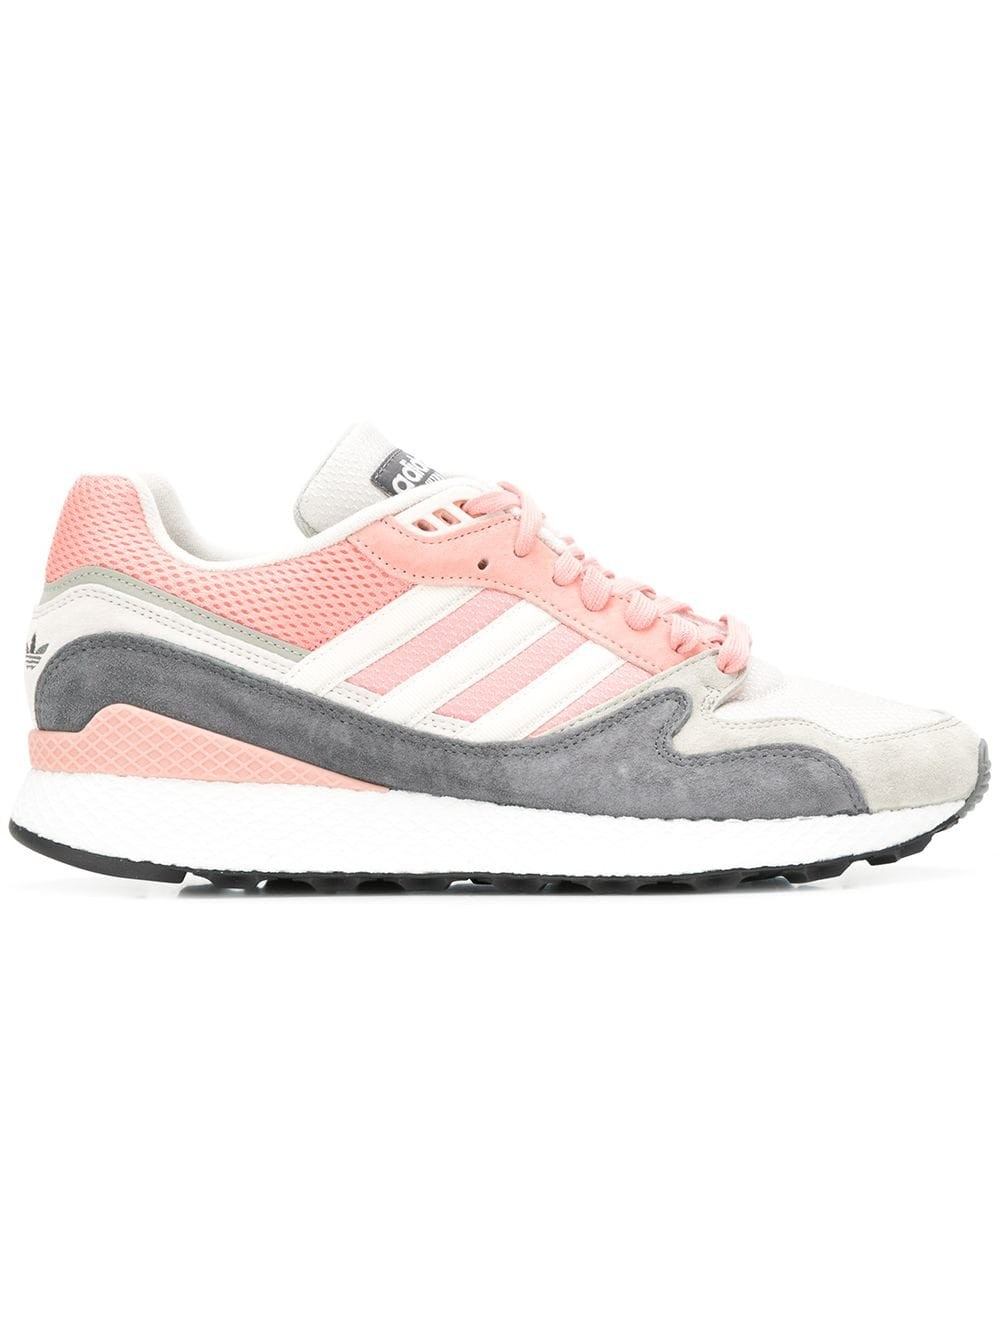 Adidas Originals Ultra Tech Rosas/Blancas/Negras B37917